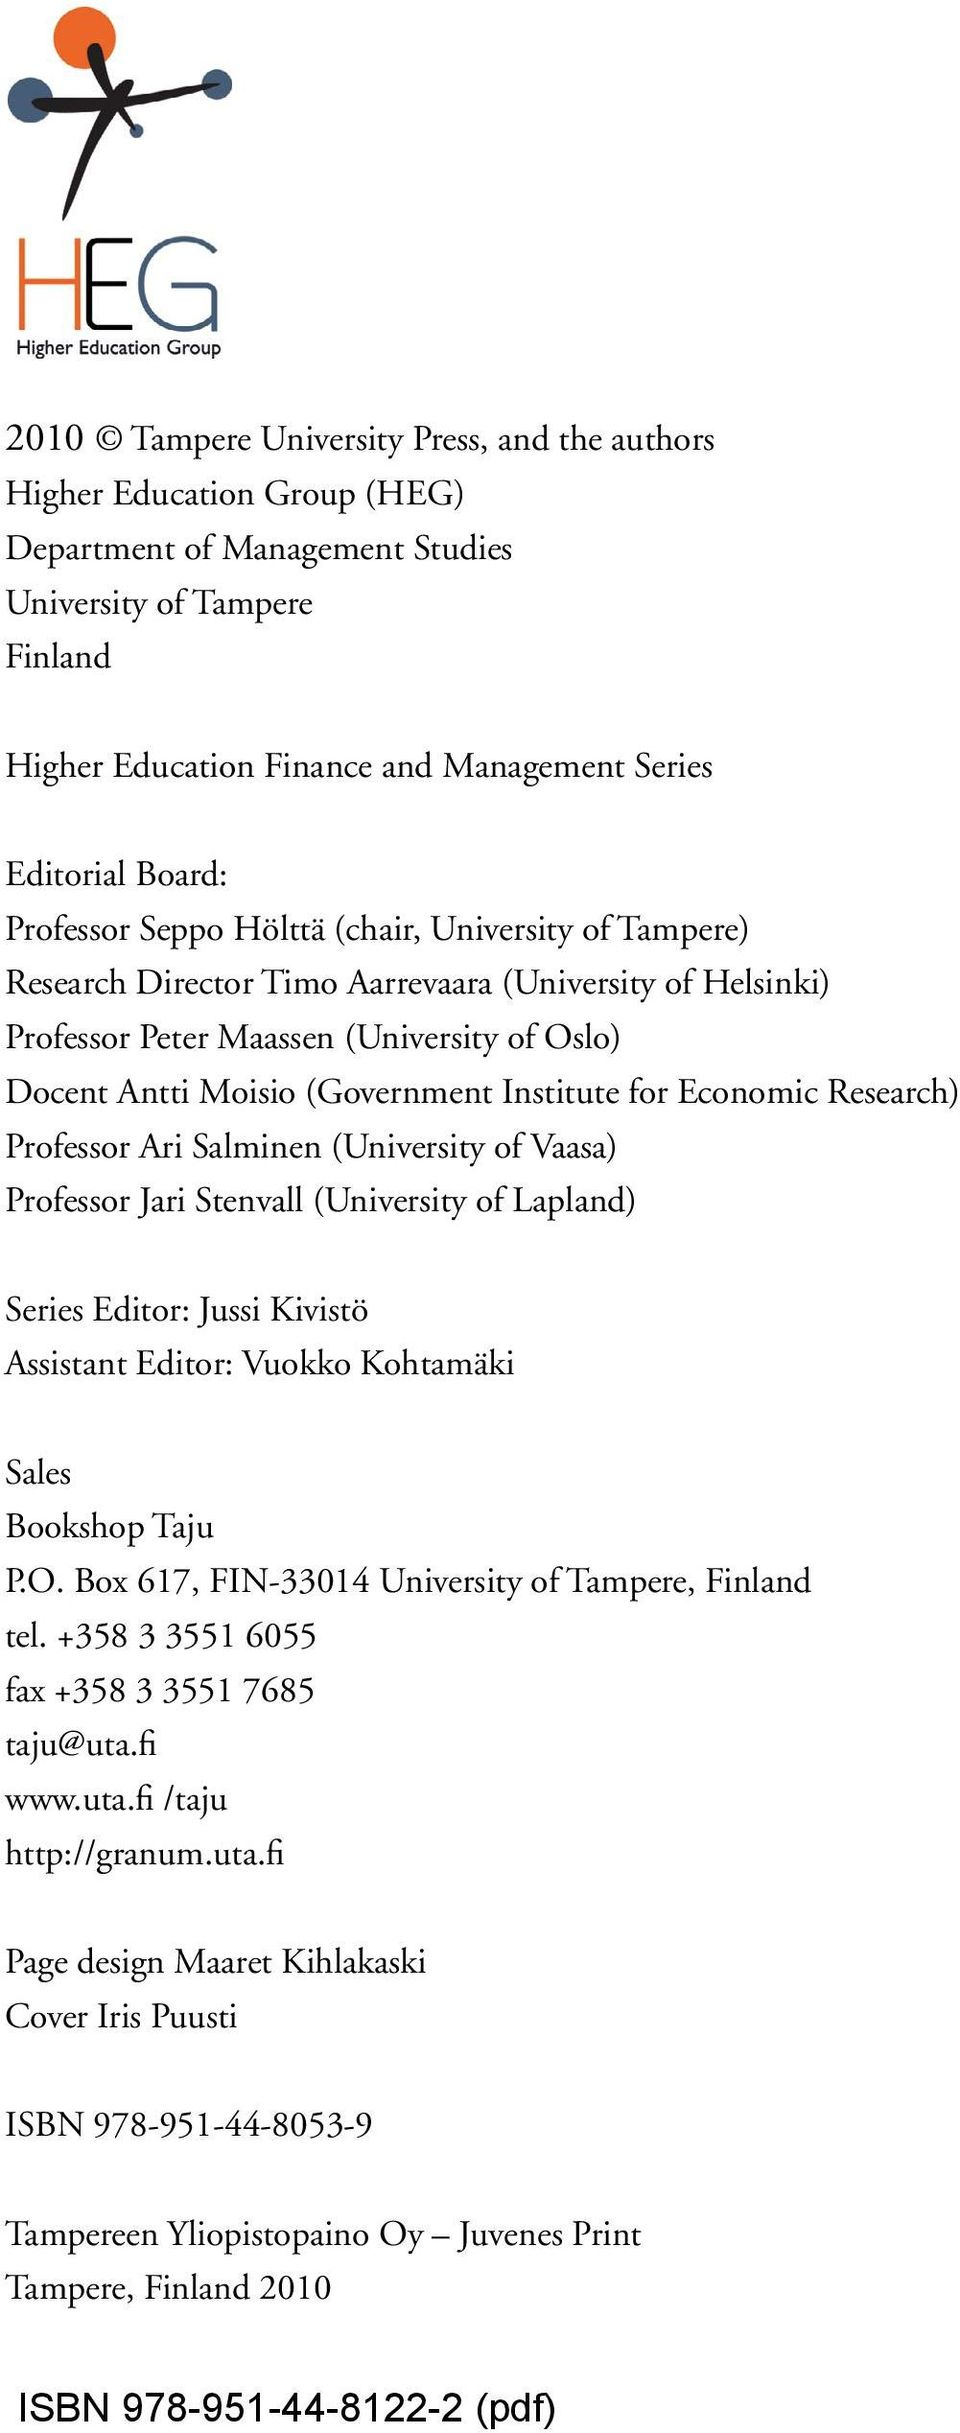 Institute for Economic Research) Professor Ari Salminen (University of Vaasa) Professor Jari Stenvall (University of Lapland) Series Editor: Jussi Kivistö Assistant Editor: Vuokko Kohtamäki Sales